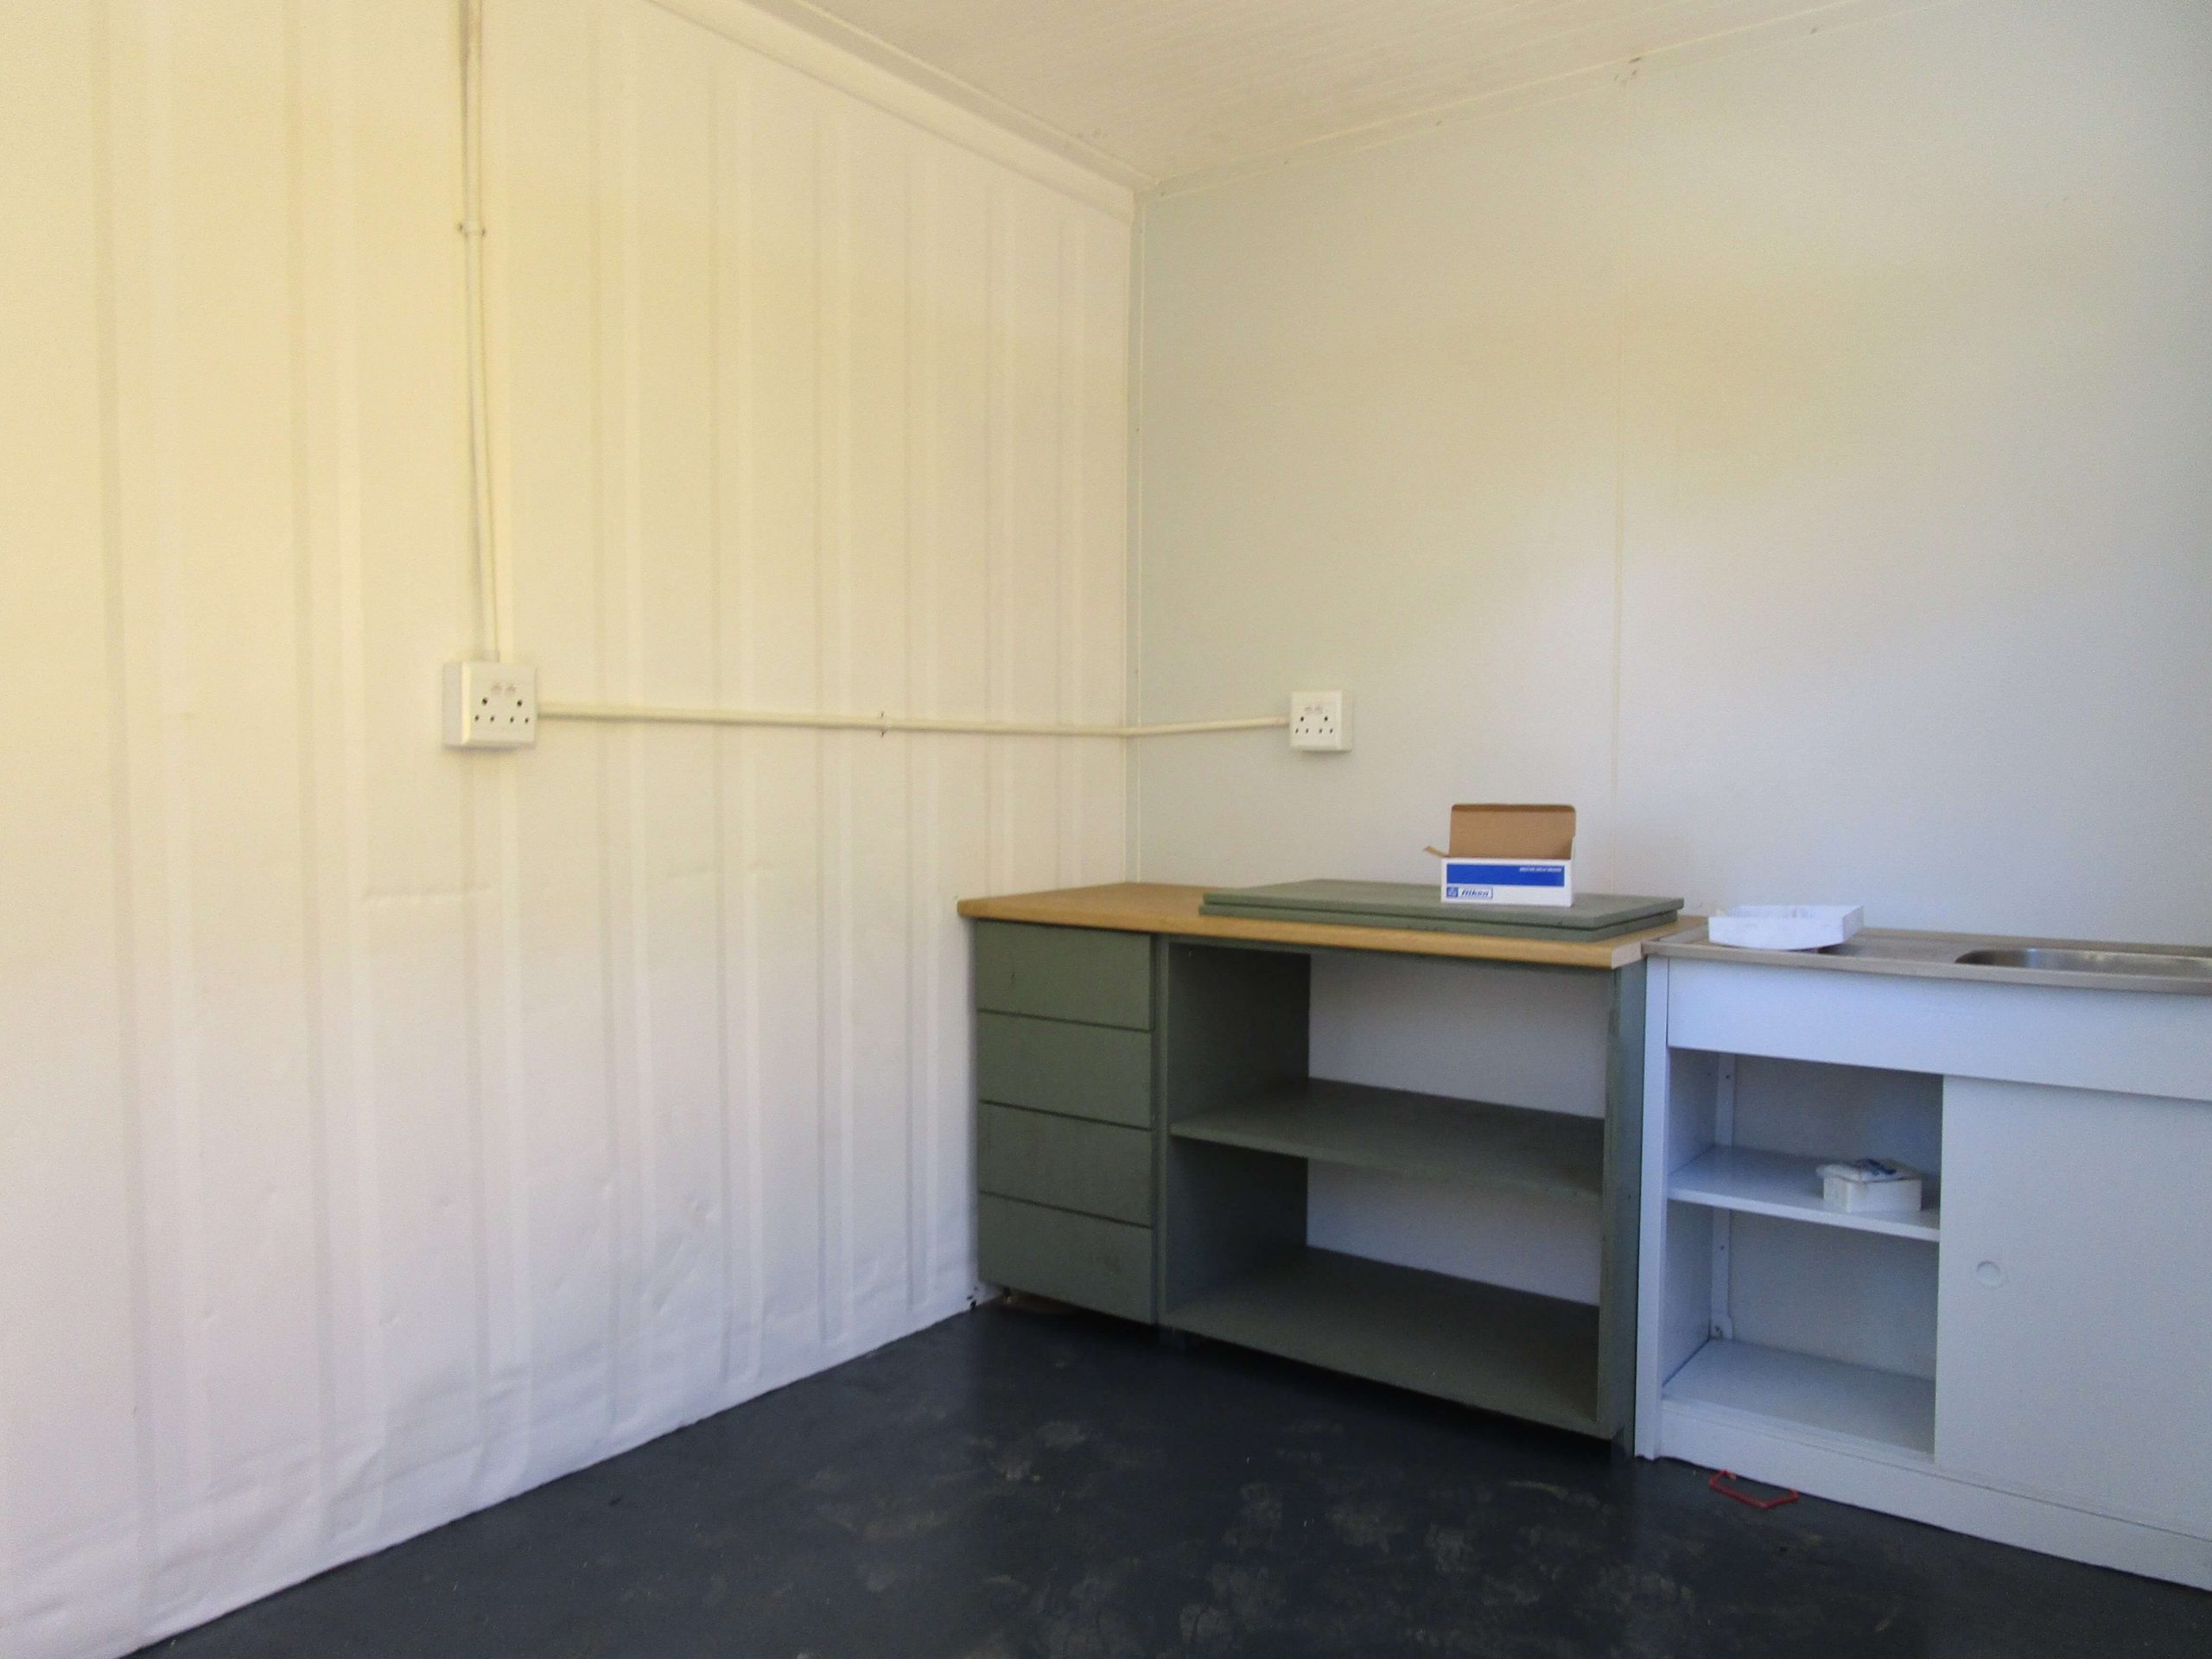 Shipping Container Ideas Internal View | Container Rental & Sales 30